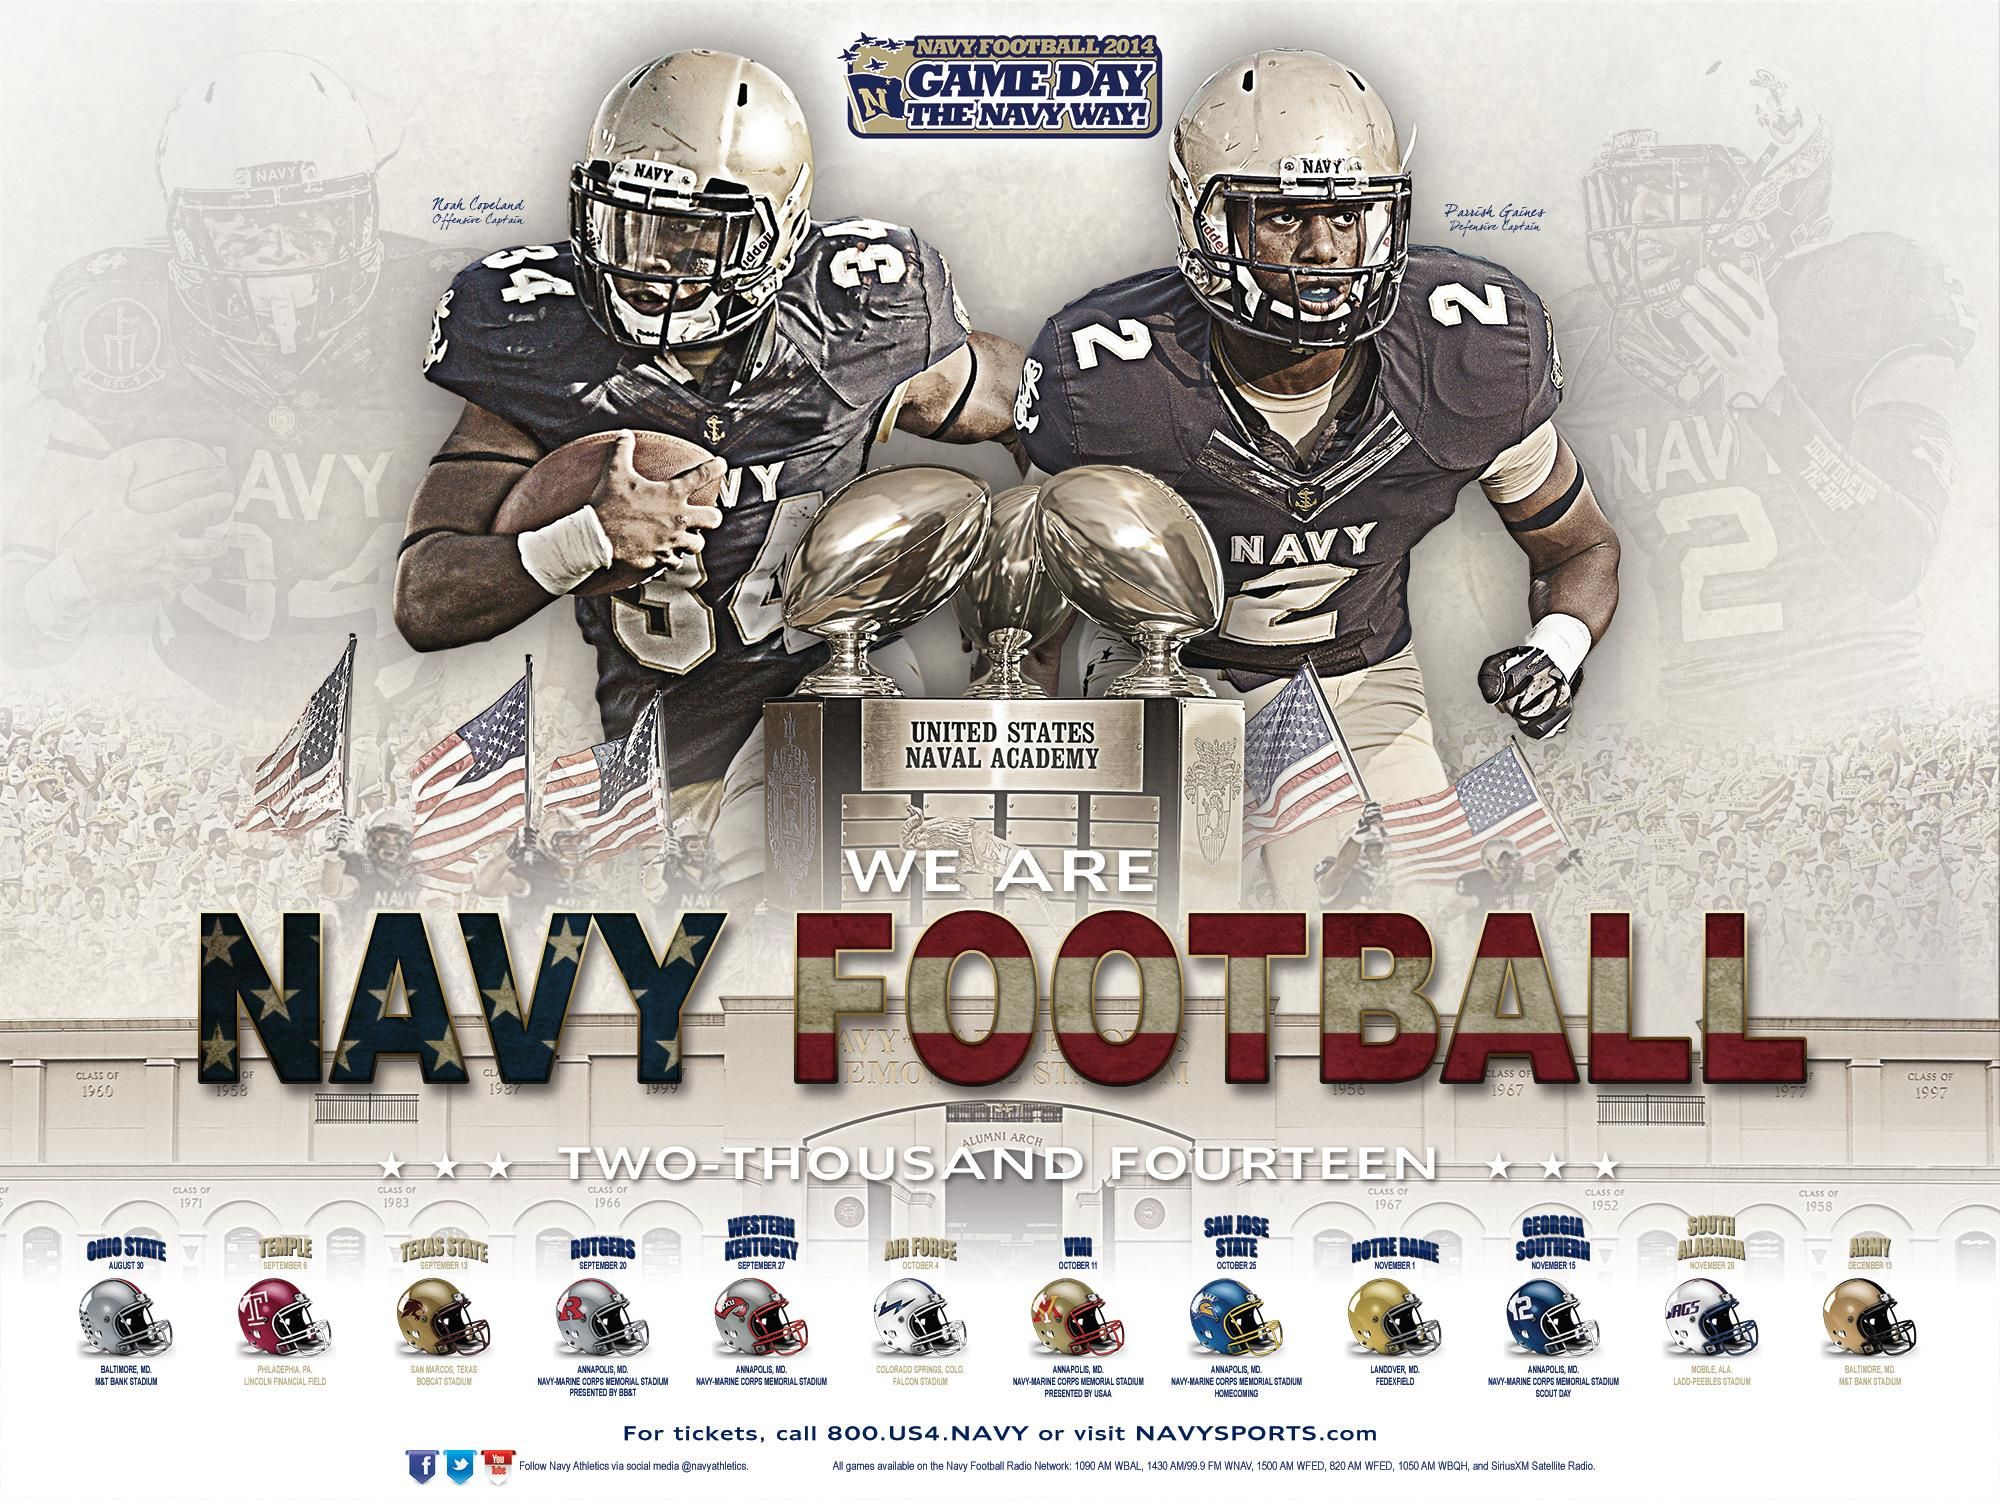 The 2014 Navy Football Poster Go Navy Navy Football Army Football College Football Schedule